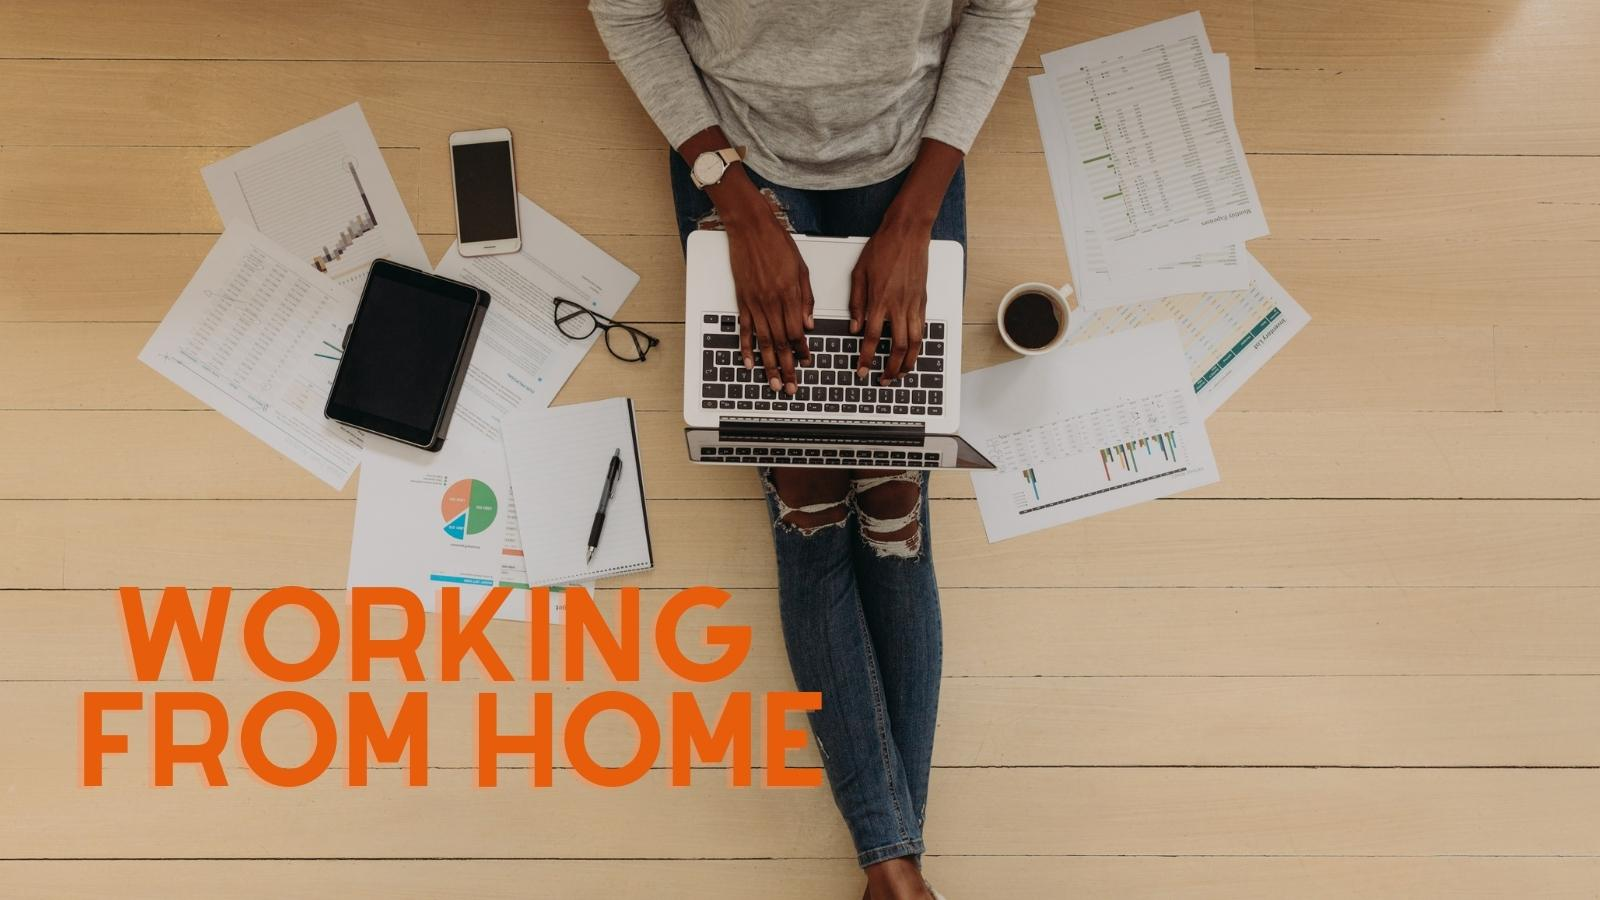 launching an international business from home